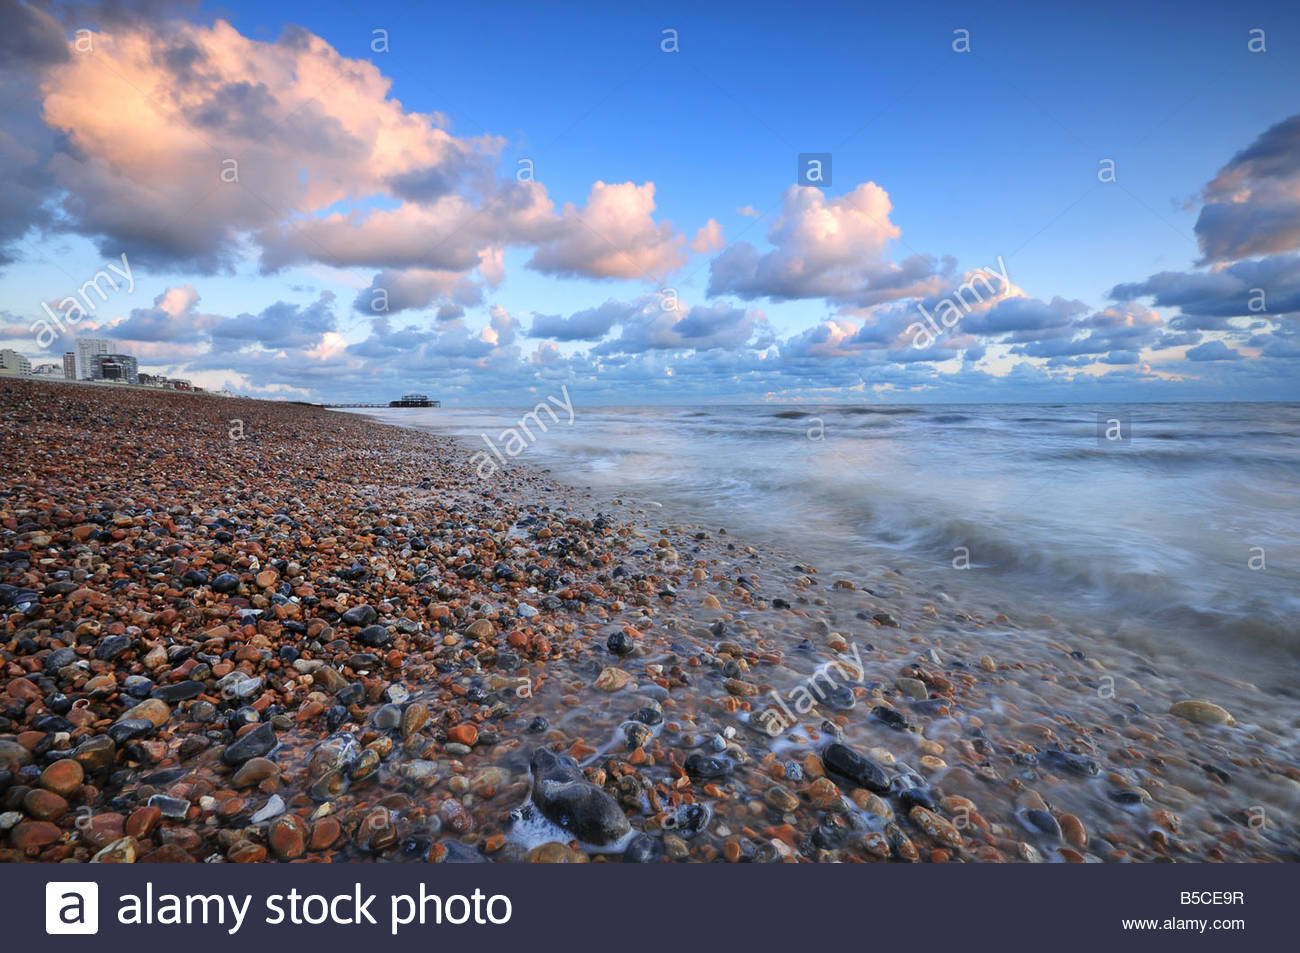 Brighton and Hove beach with pebbles and stones West Pier in the 1300x953